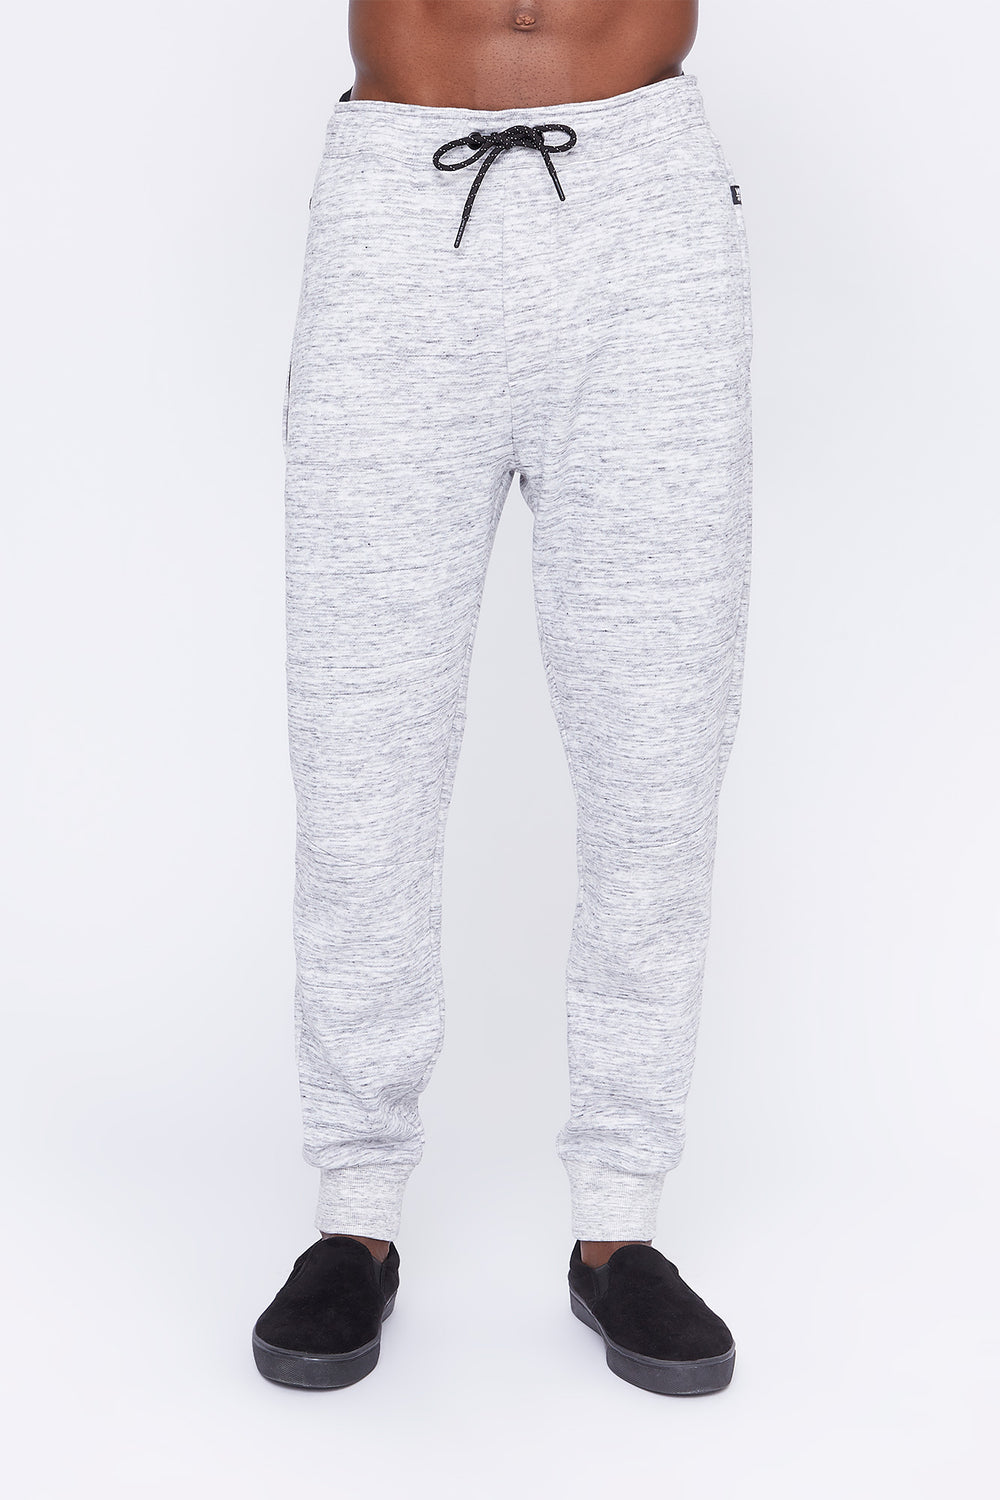 Jogger Spacedye West49 Homme Gris